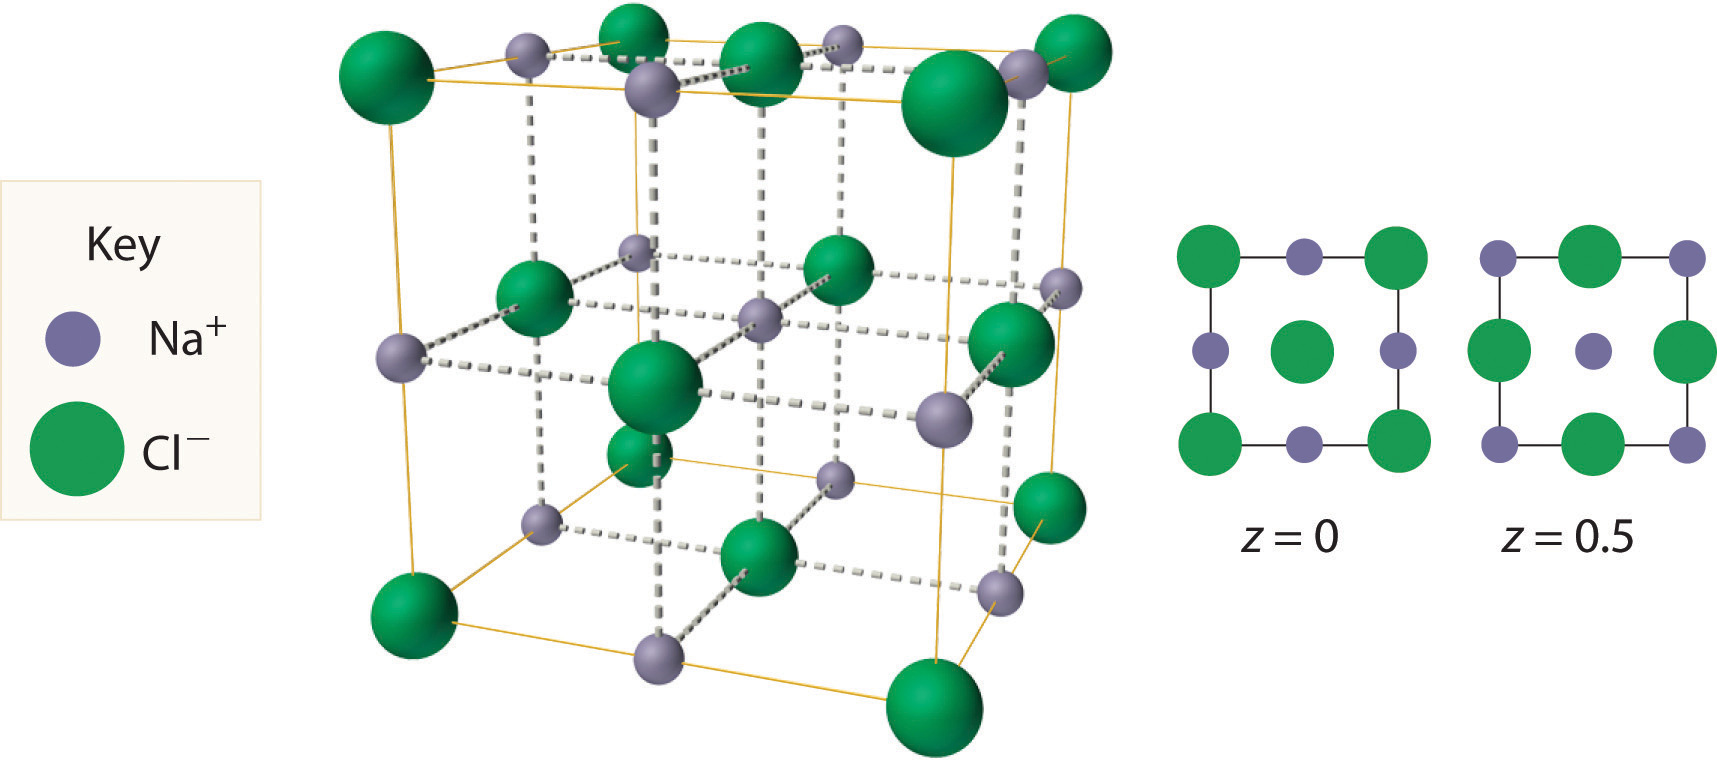 General chemistry principles patterns and applications v10 general chemistry principles patterns and applications v10 flatworld ccuart Image collections